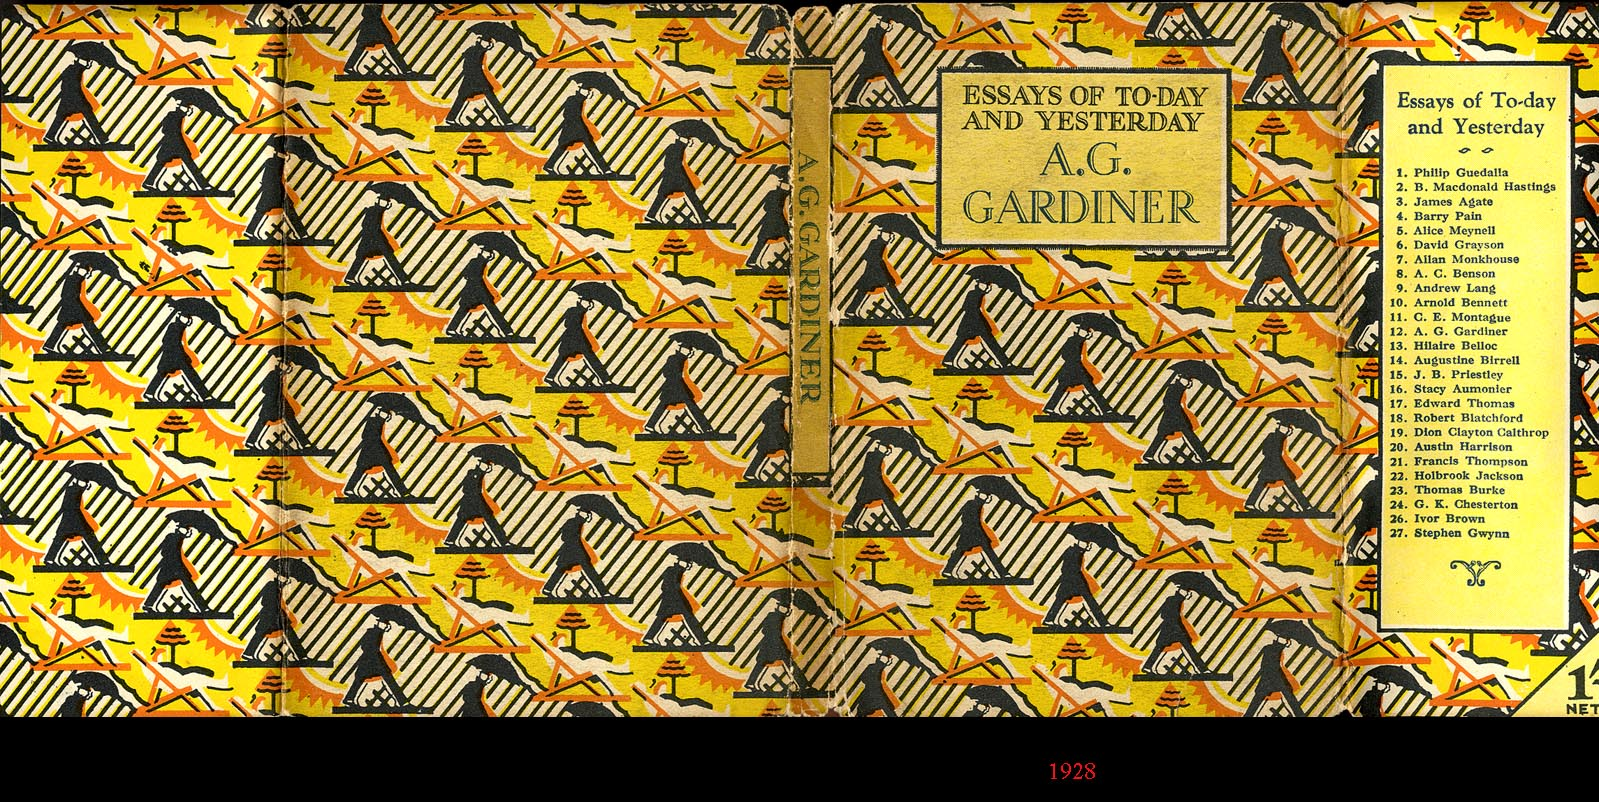 a g gardiner essays any one has any idea where to get info on a g gardiner